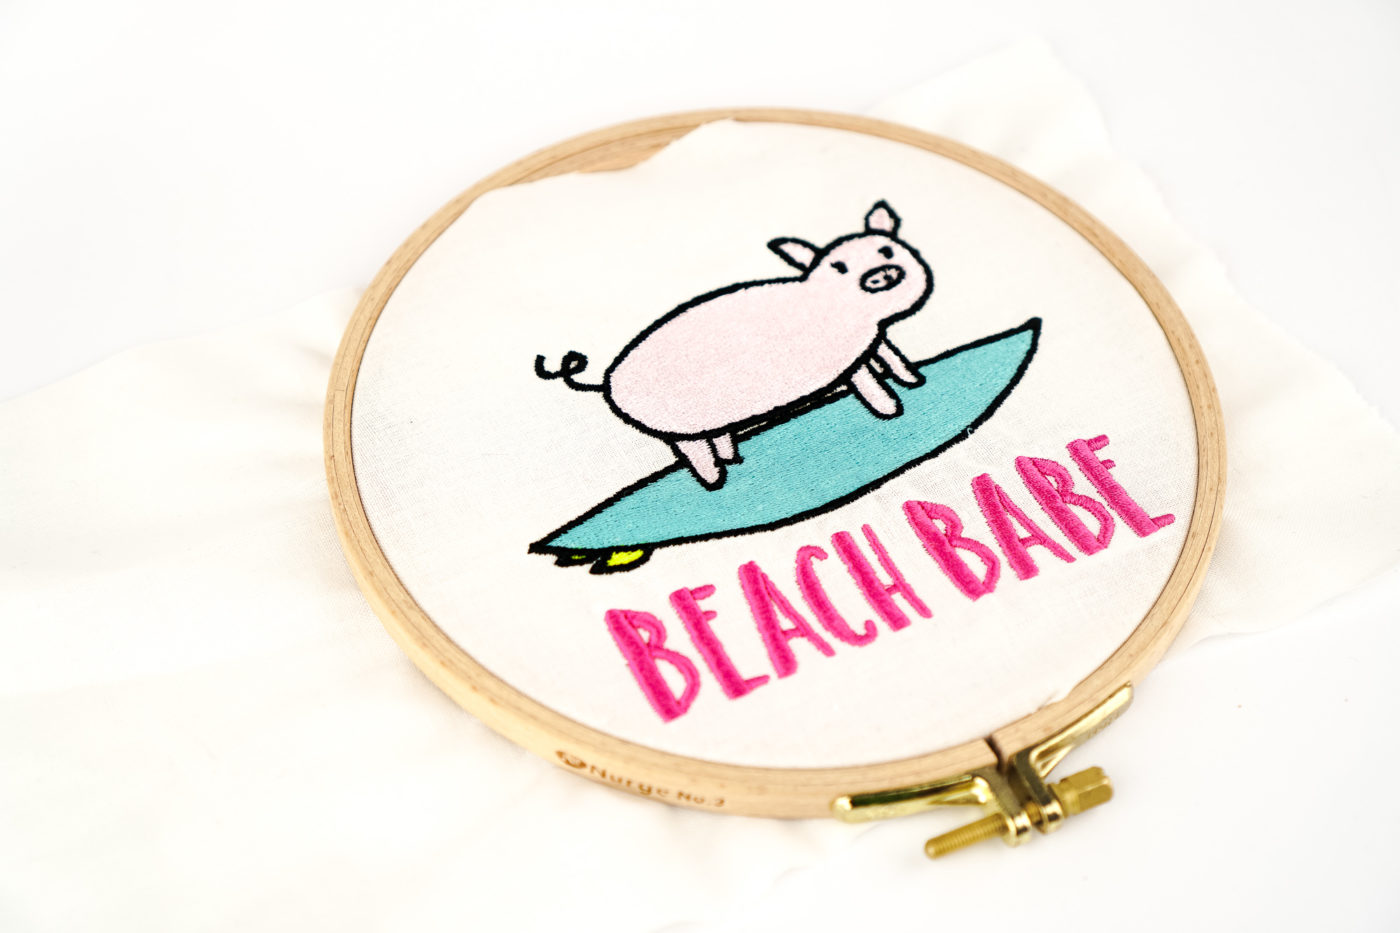 Stickdatei Schwein Surfing girl embroidery design Girl »Fashionista« stickdatei schwein surfing 02 1400x933